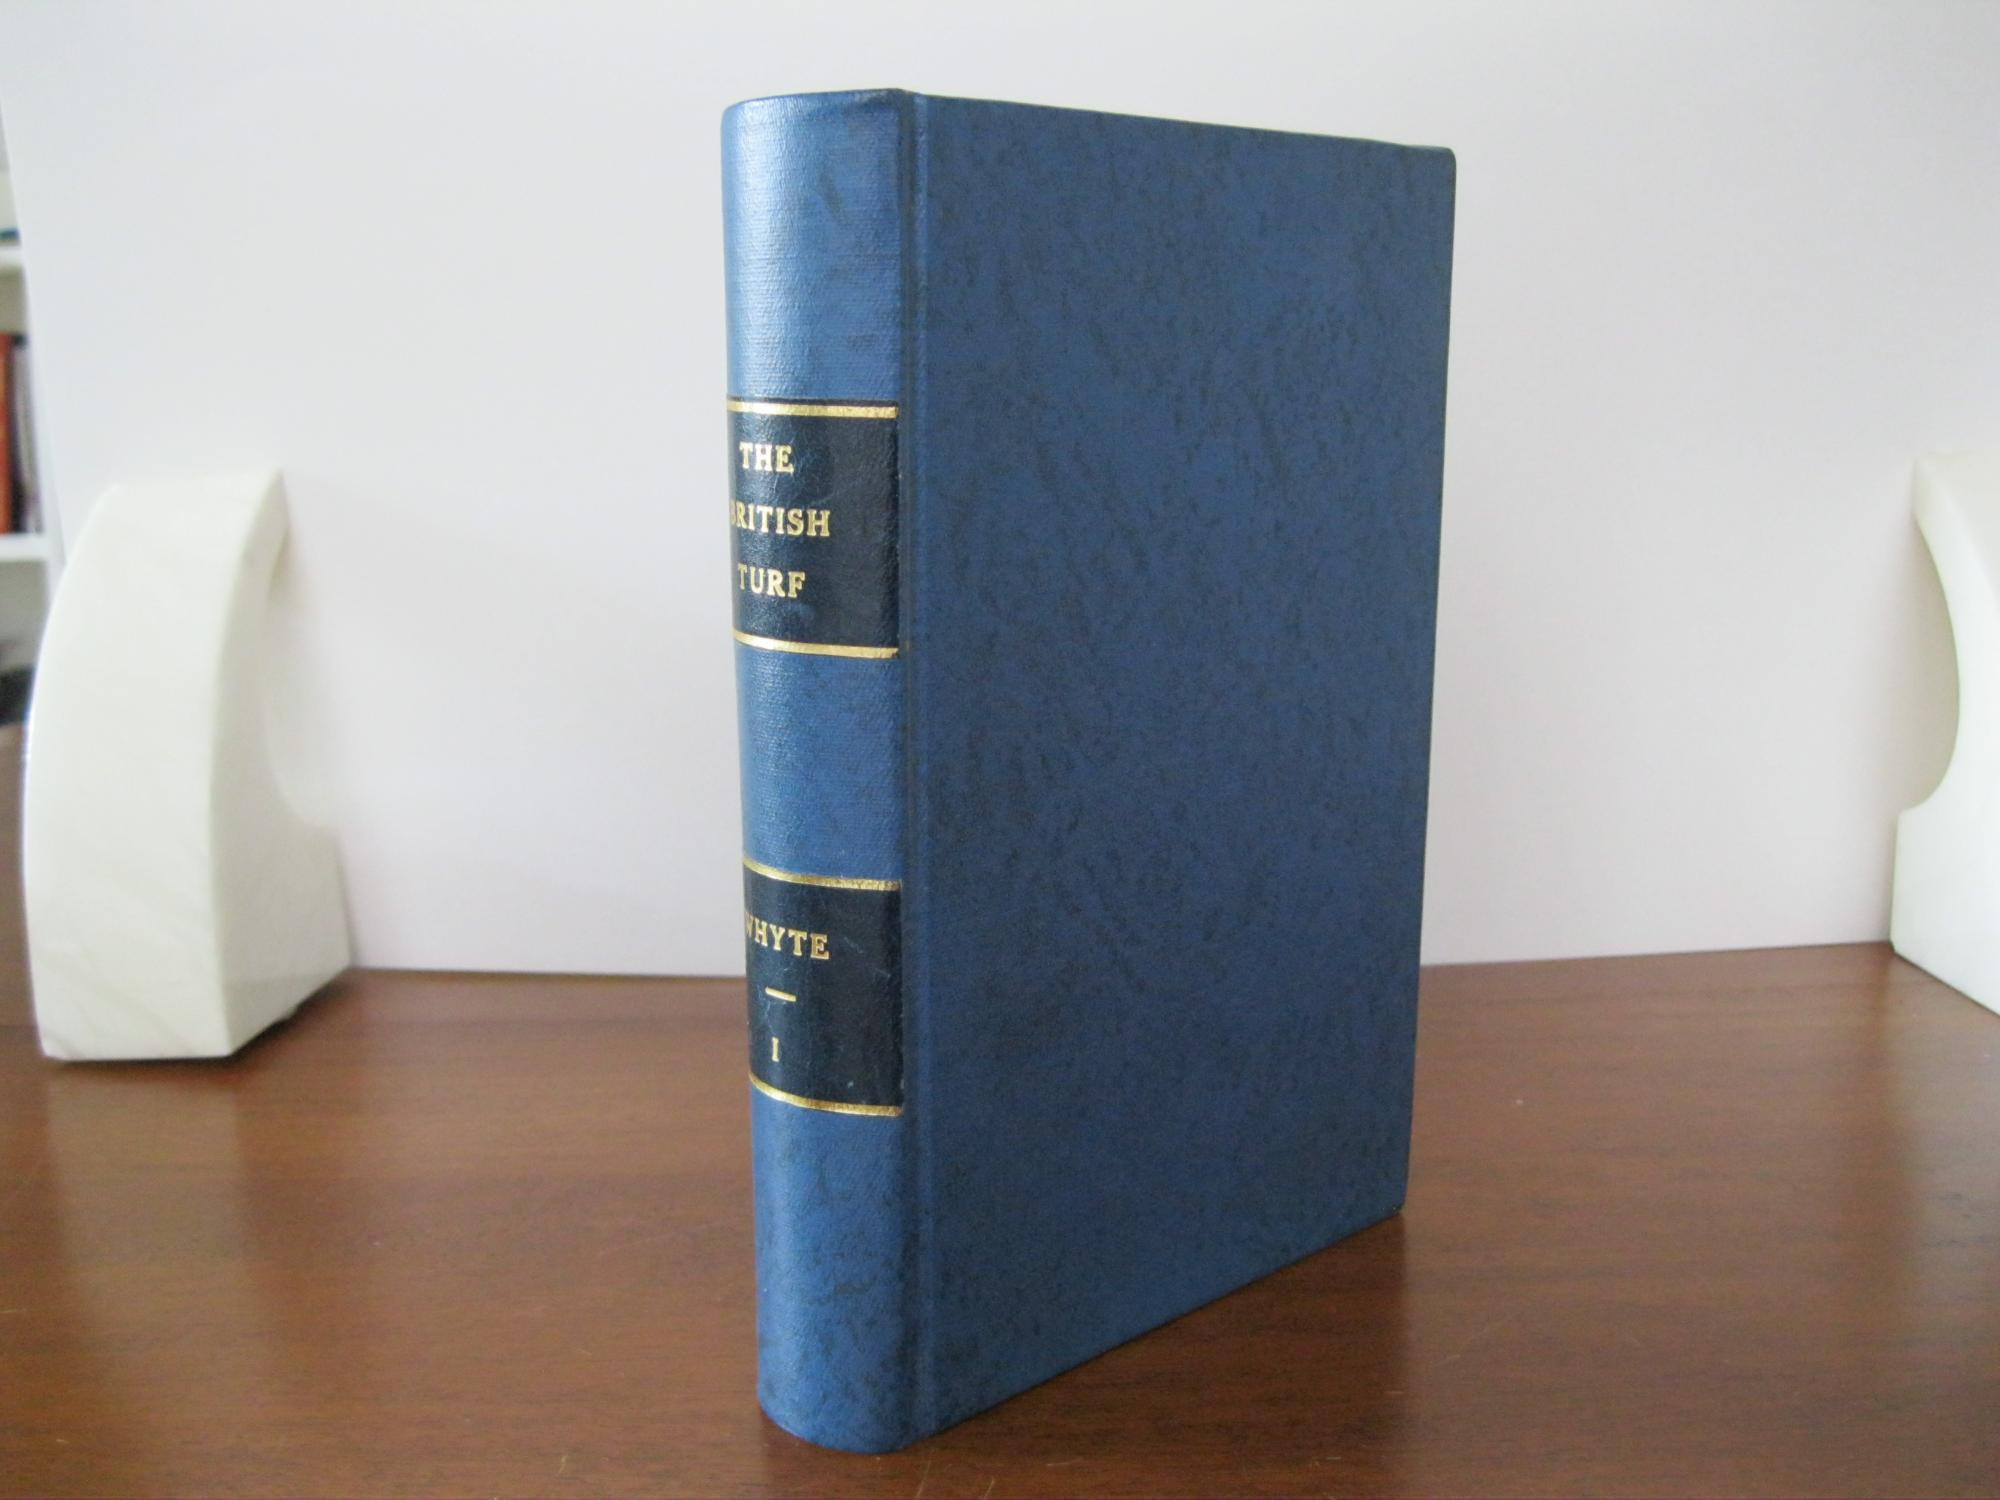 HISTORY_OF_THE_BRITISH_TURF_TWO_VOLUMES_WHYTE,_JAMES_CHRISTIE,_Esq._[Near_Fine]_[Hardcover]